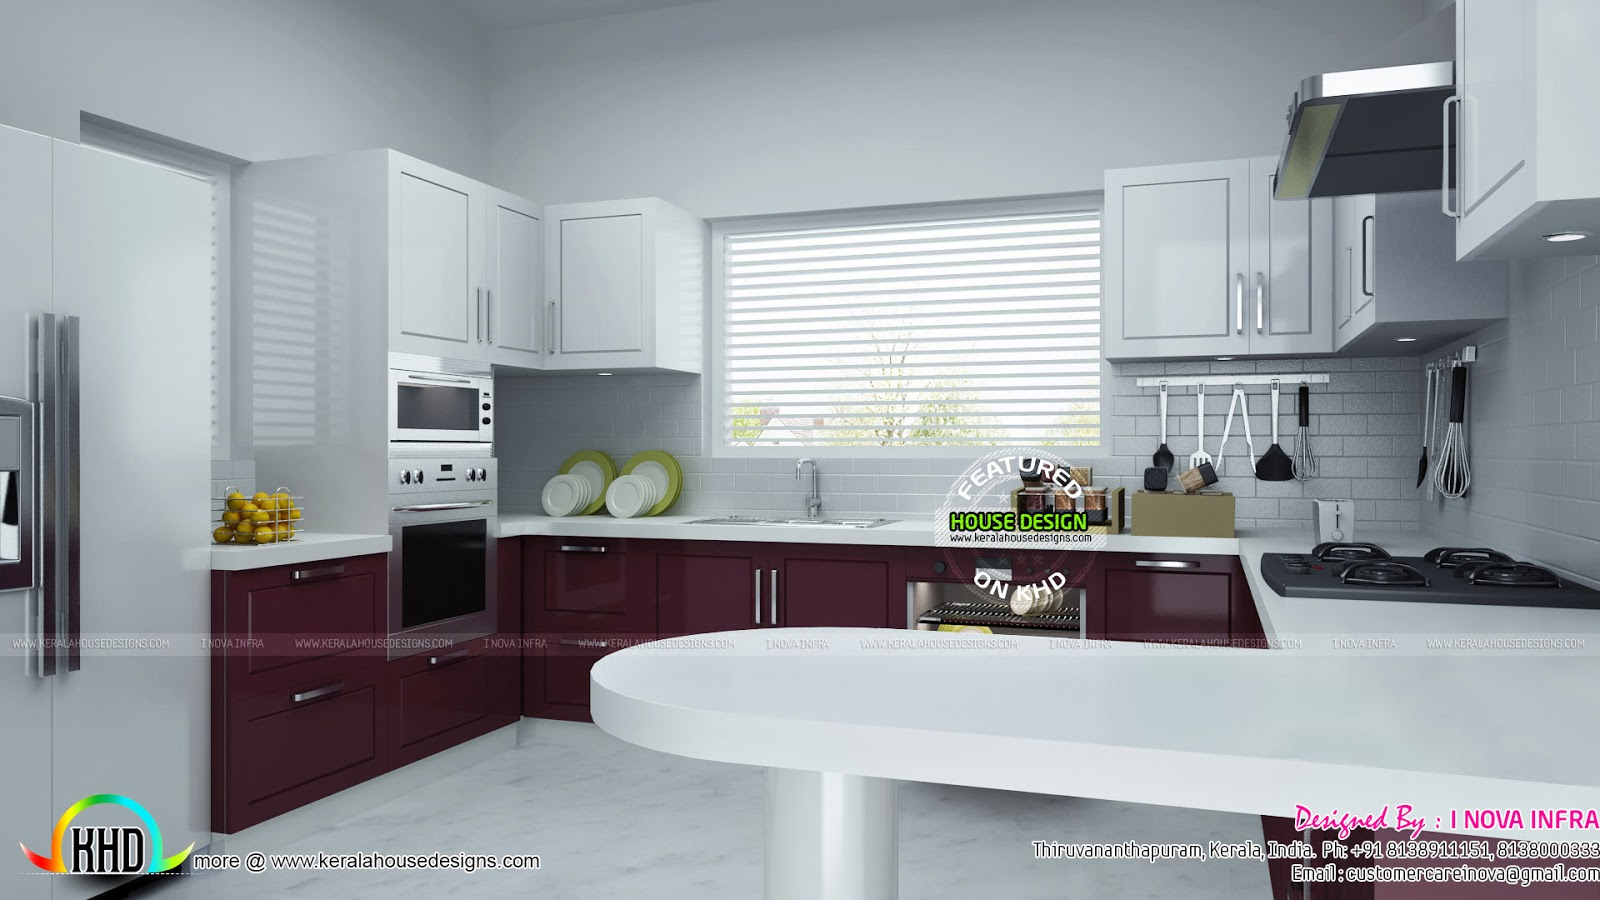 Modular kitchen Kerala - Kerala home design and floor plans